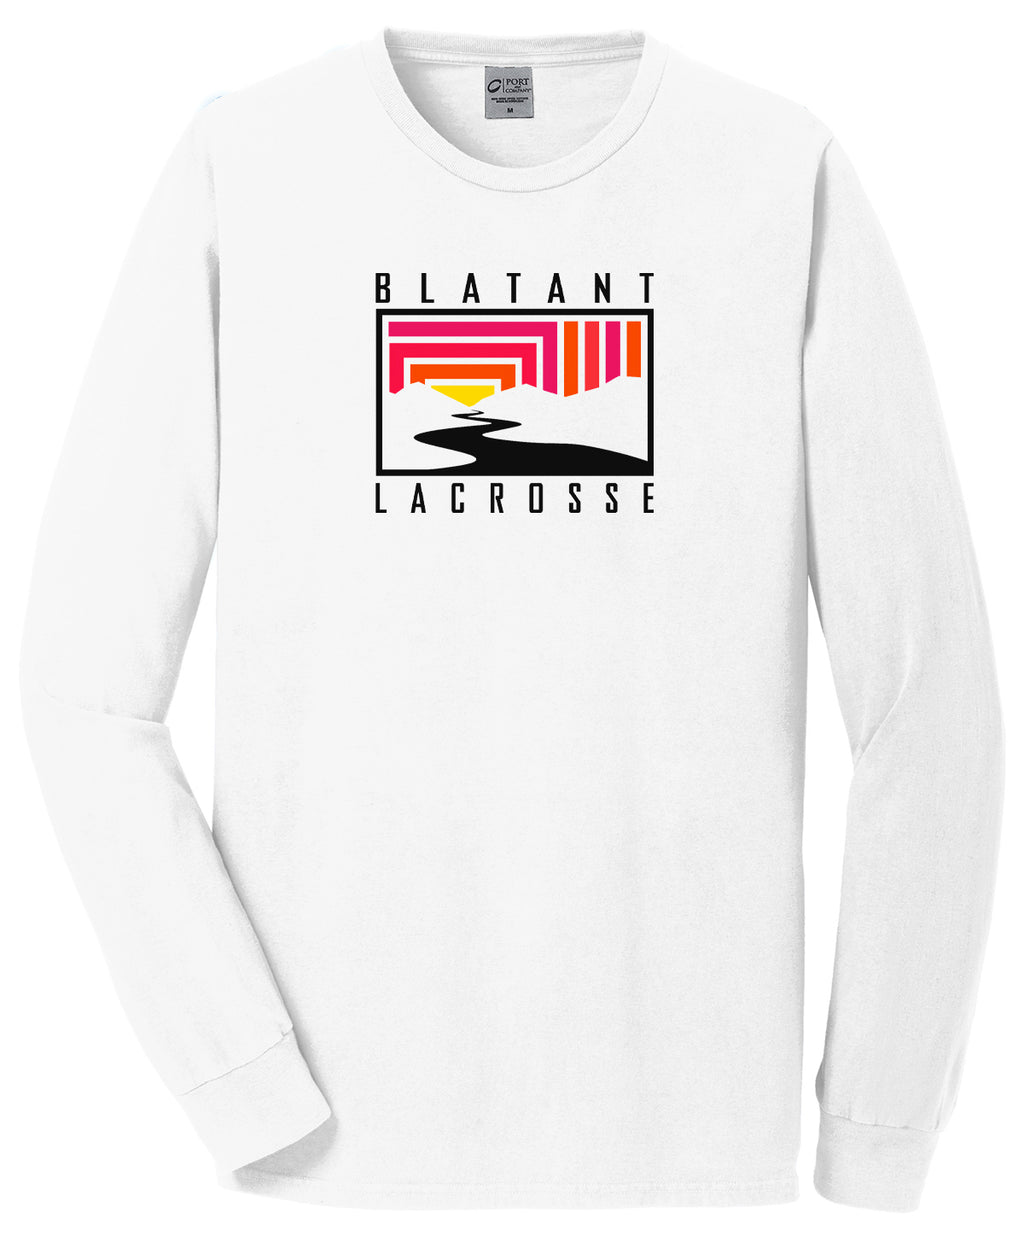 Blatant Lacrosse Ellis Graphic Long Sleeve